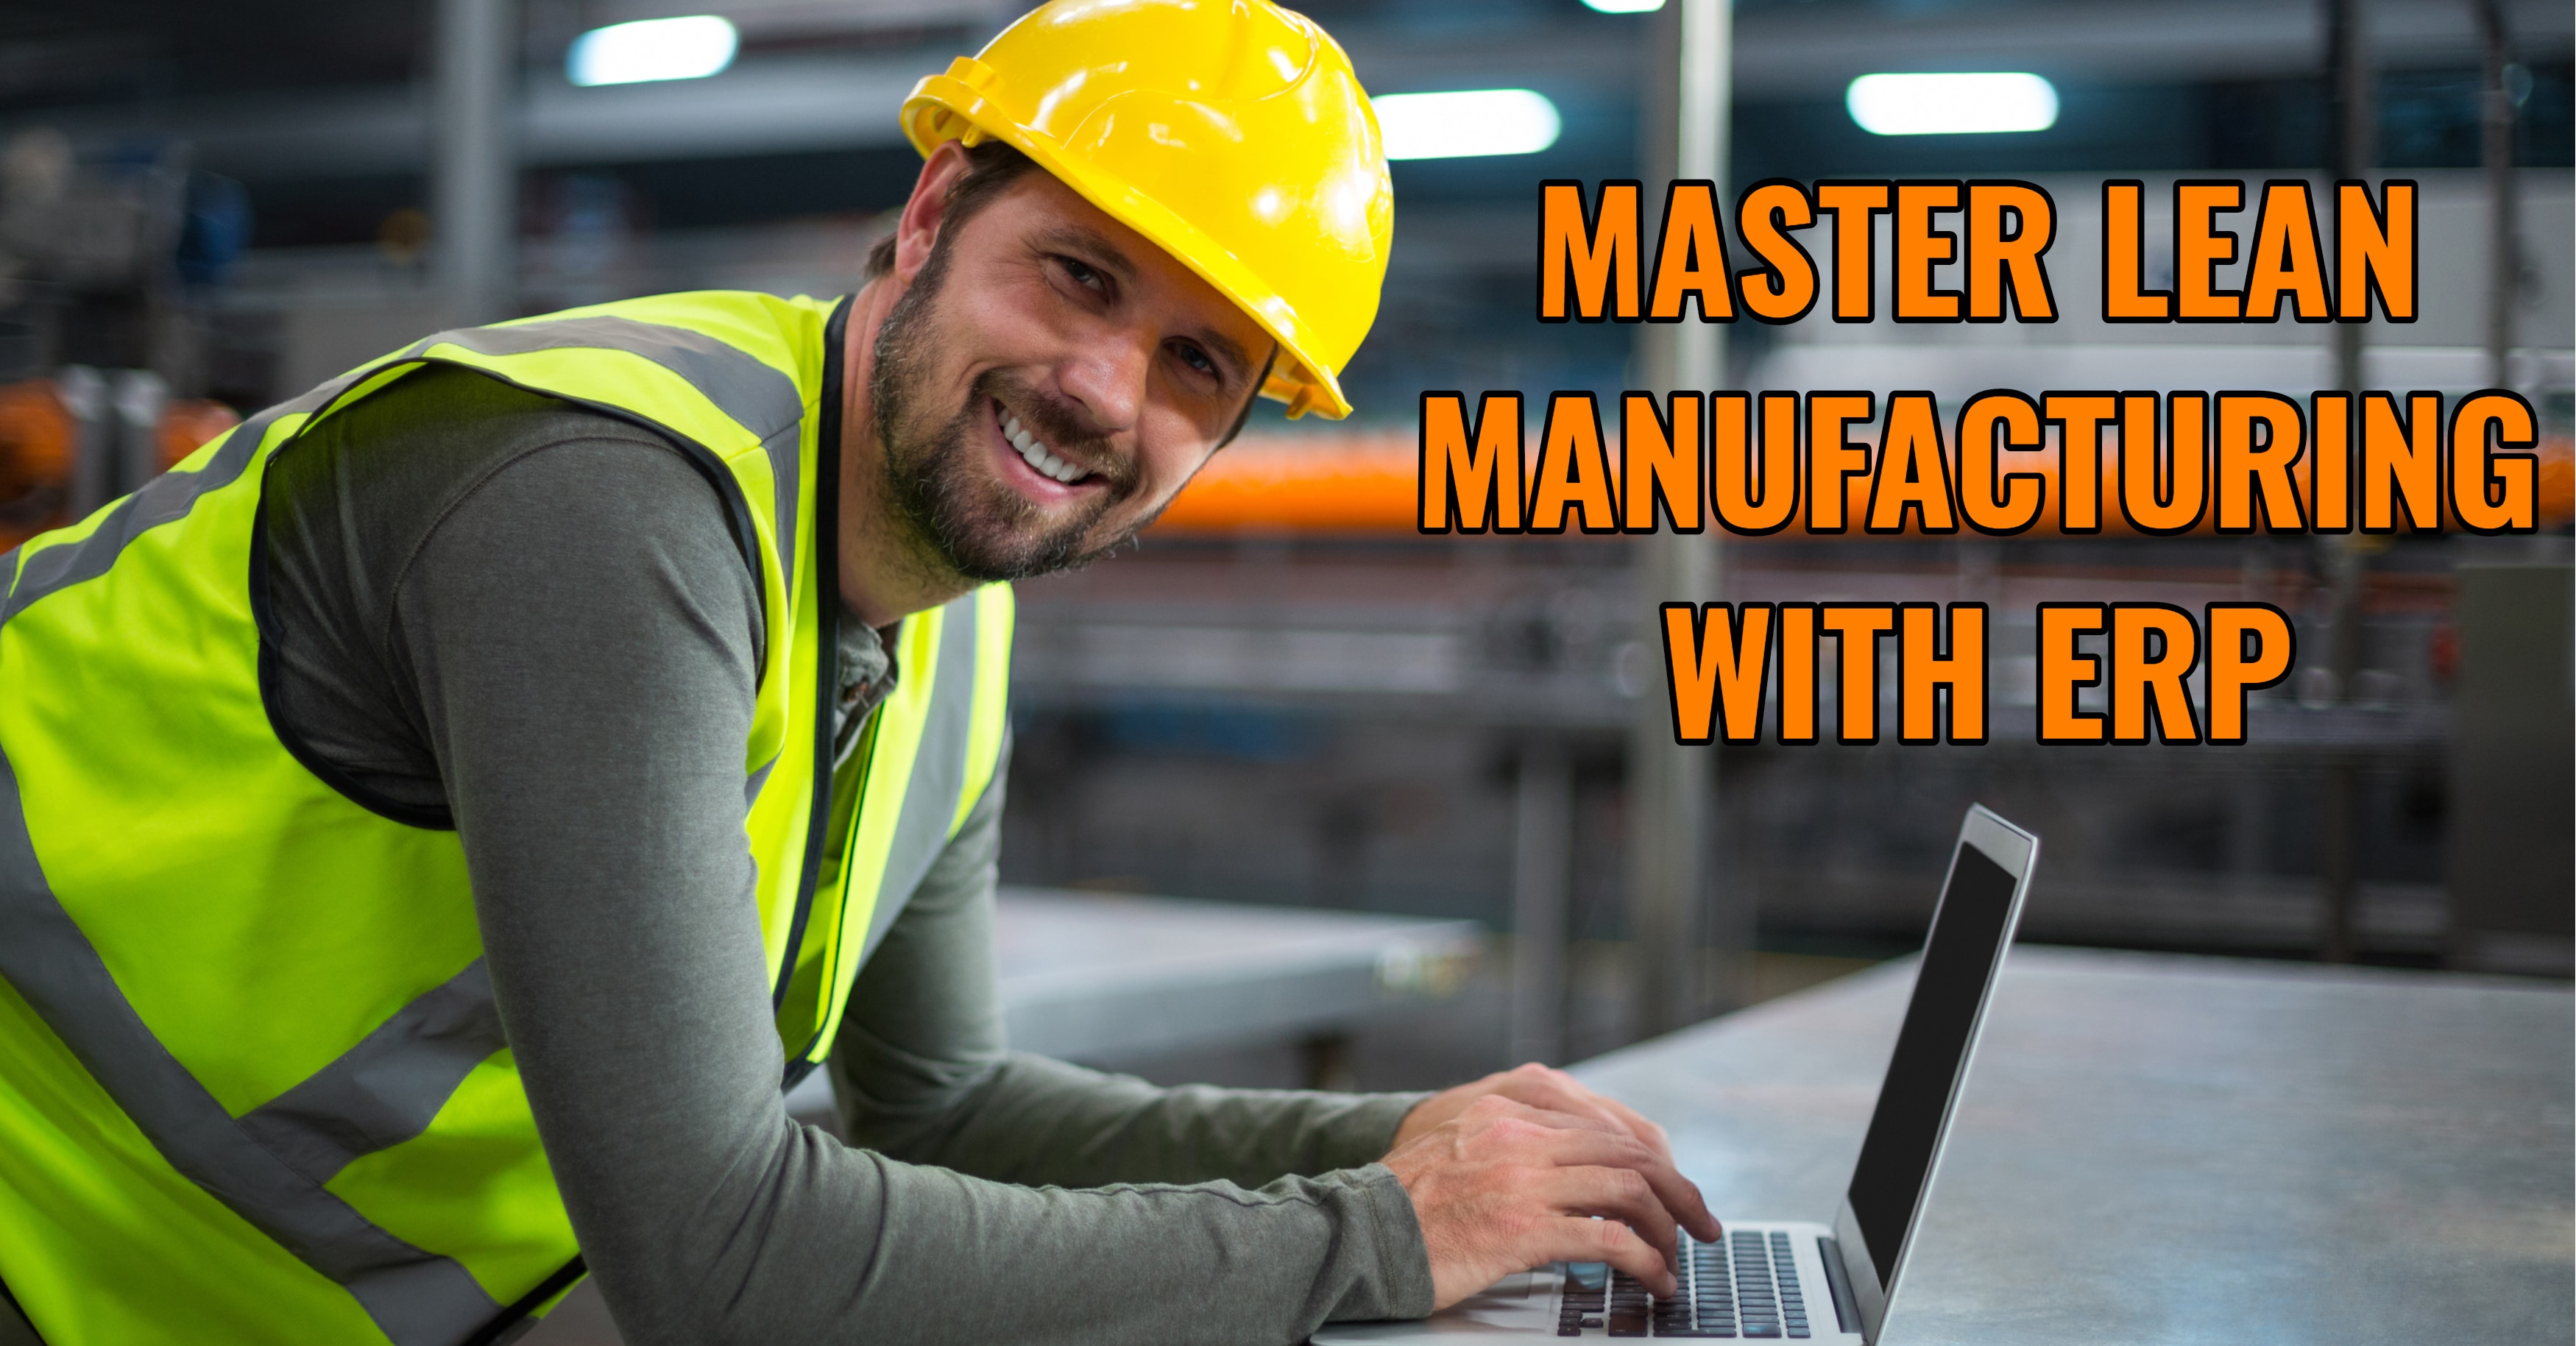 Become a Masterful Lean Manufacturer With ERP